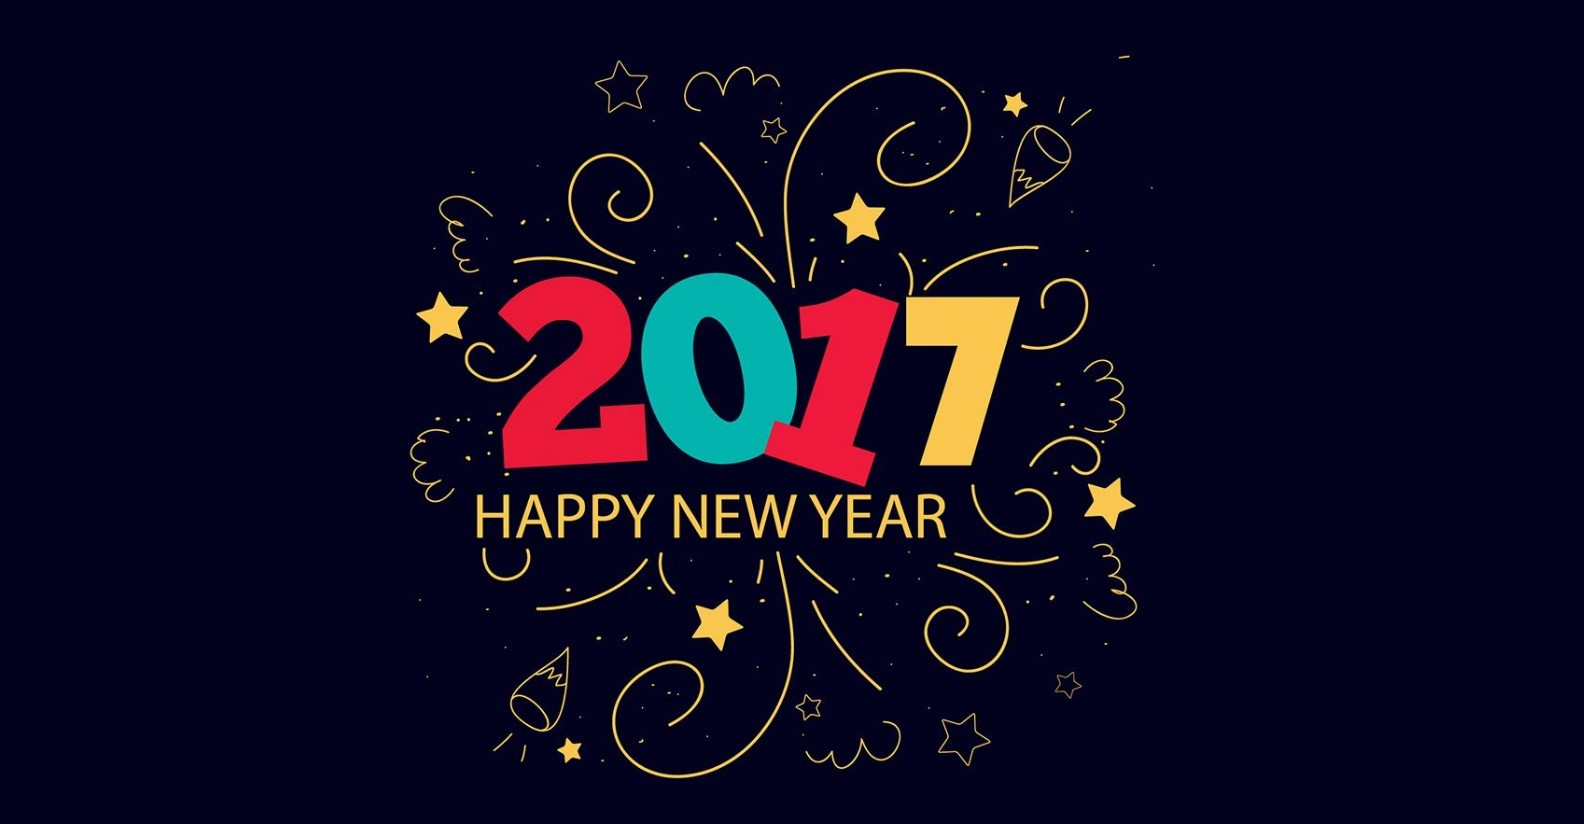 New Year 2017 Hd Wallpaper: Happy New Year Quotes And Images, Greeting Messages